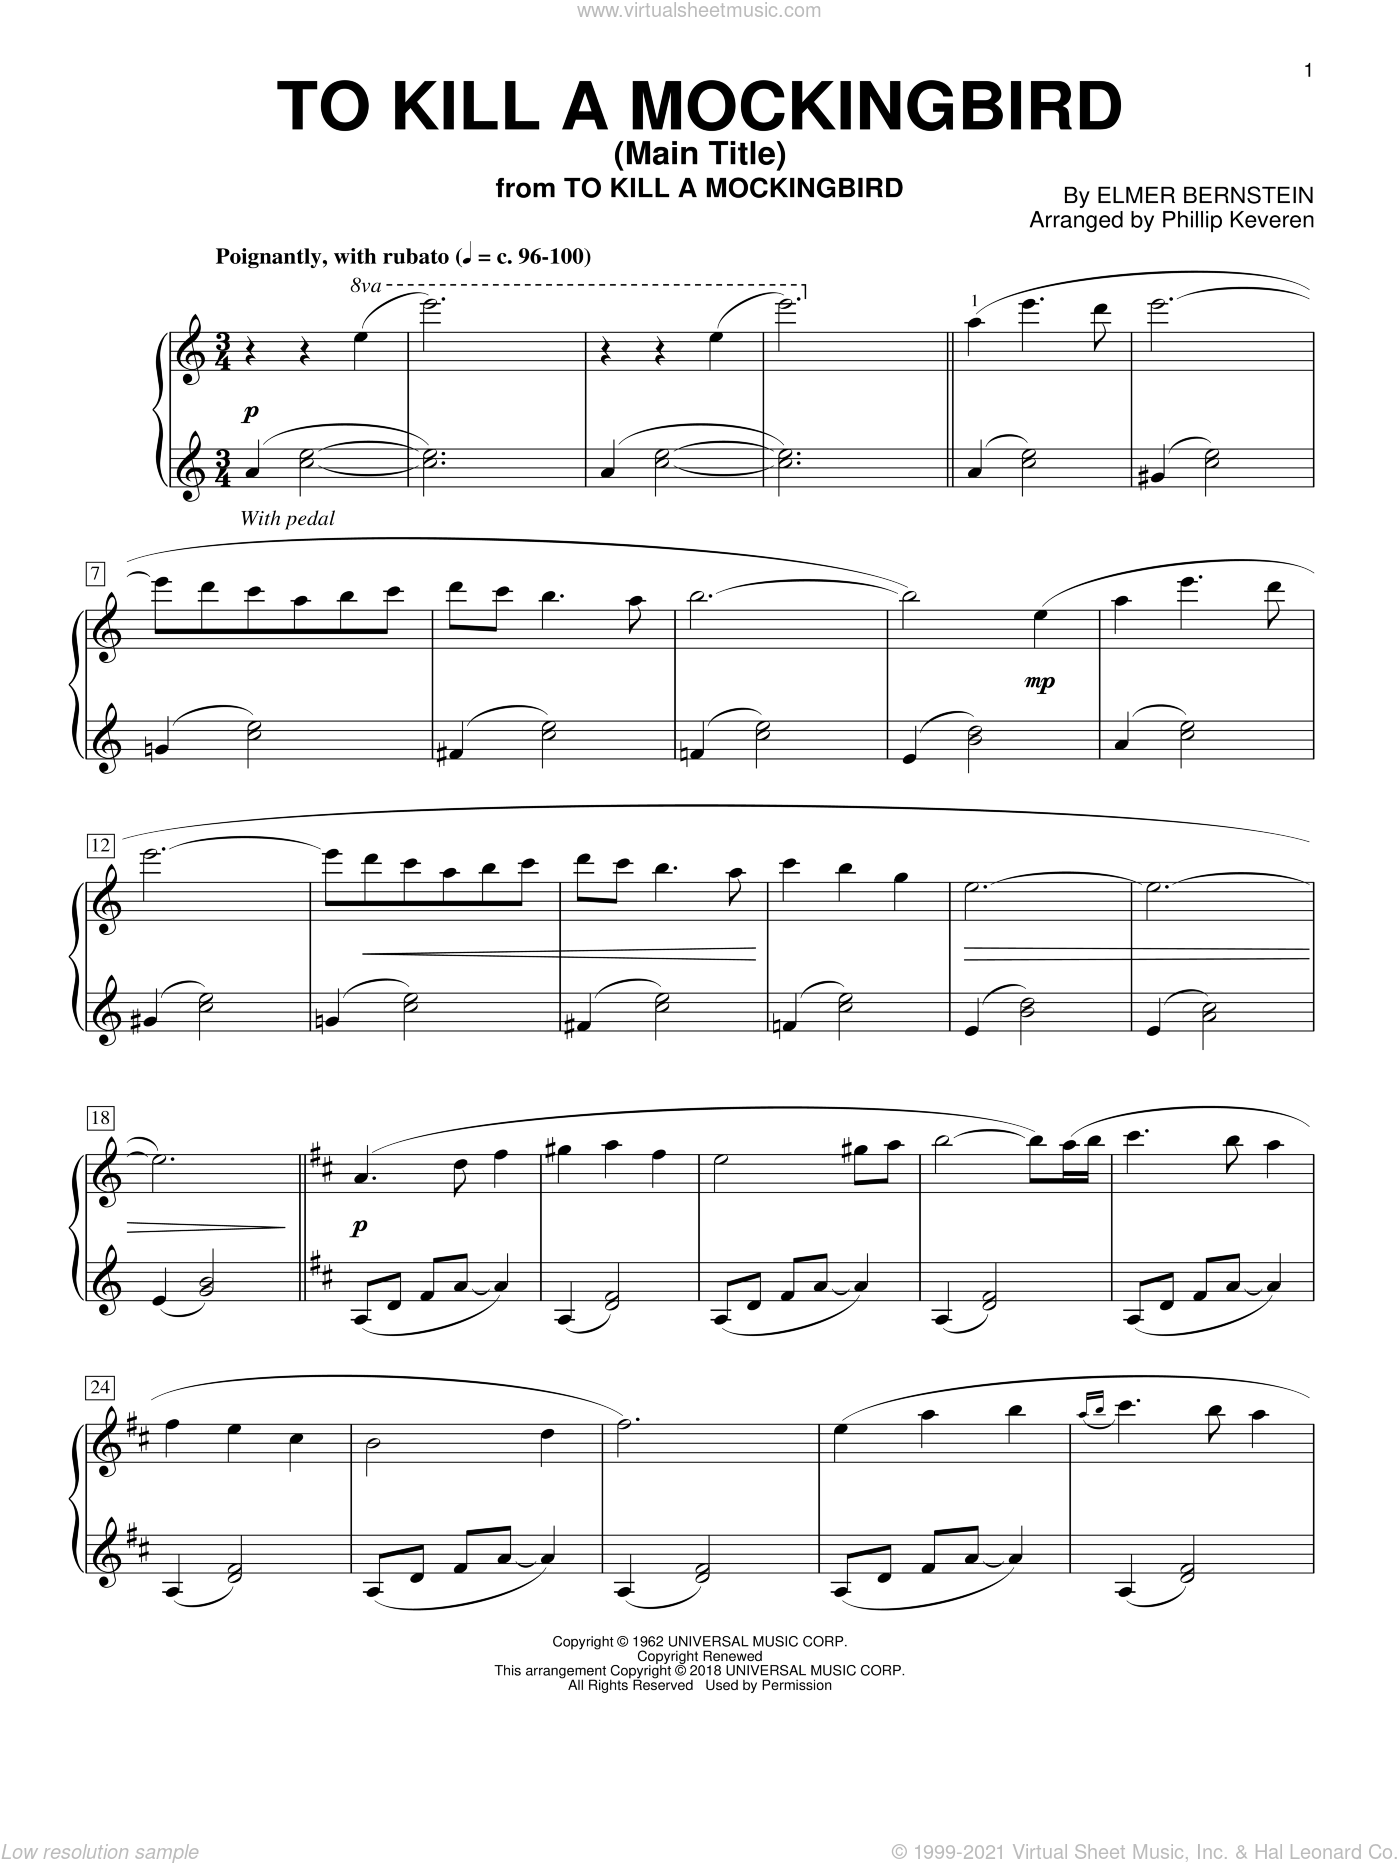 To Kill A Mockingbird - Main Title sheet music for piano solo by Elmer Bernstein and Phillip Keveren, intermediate skill level